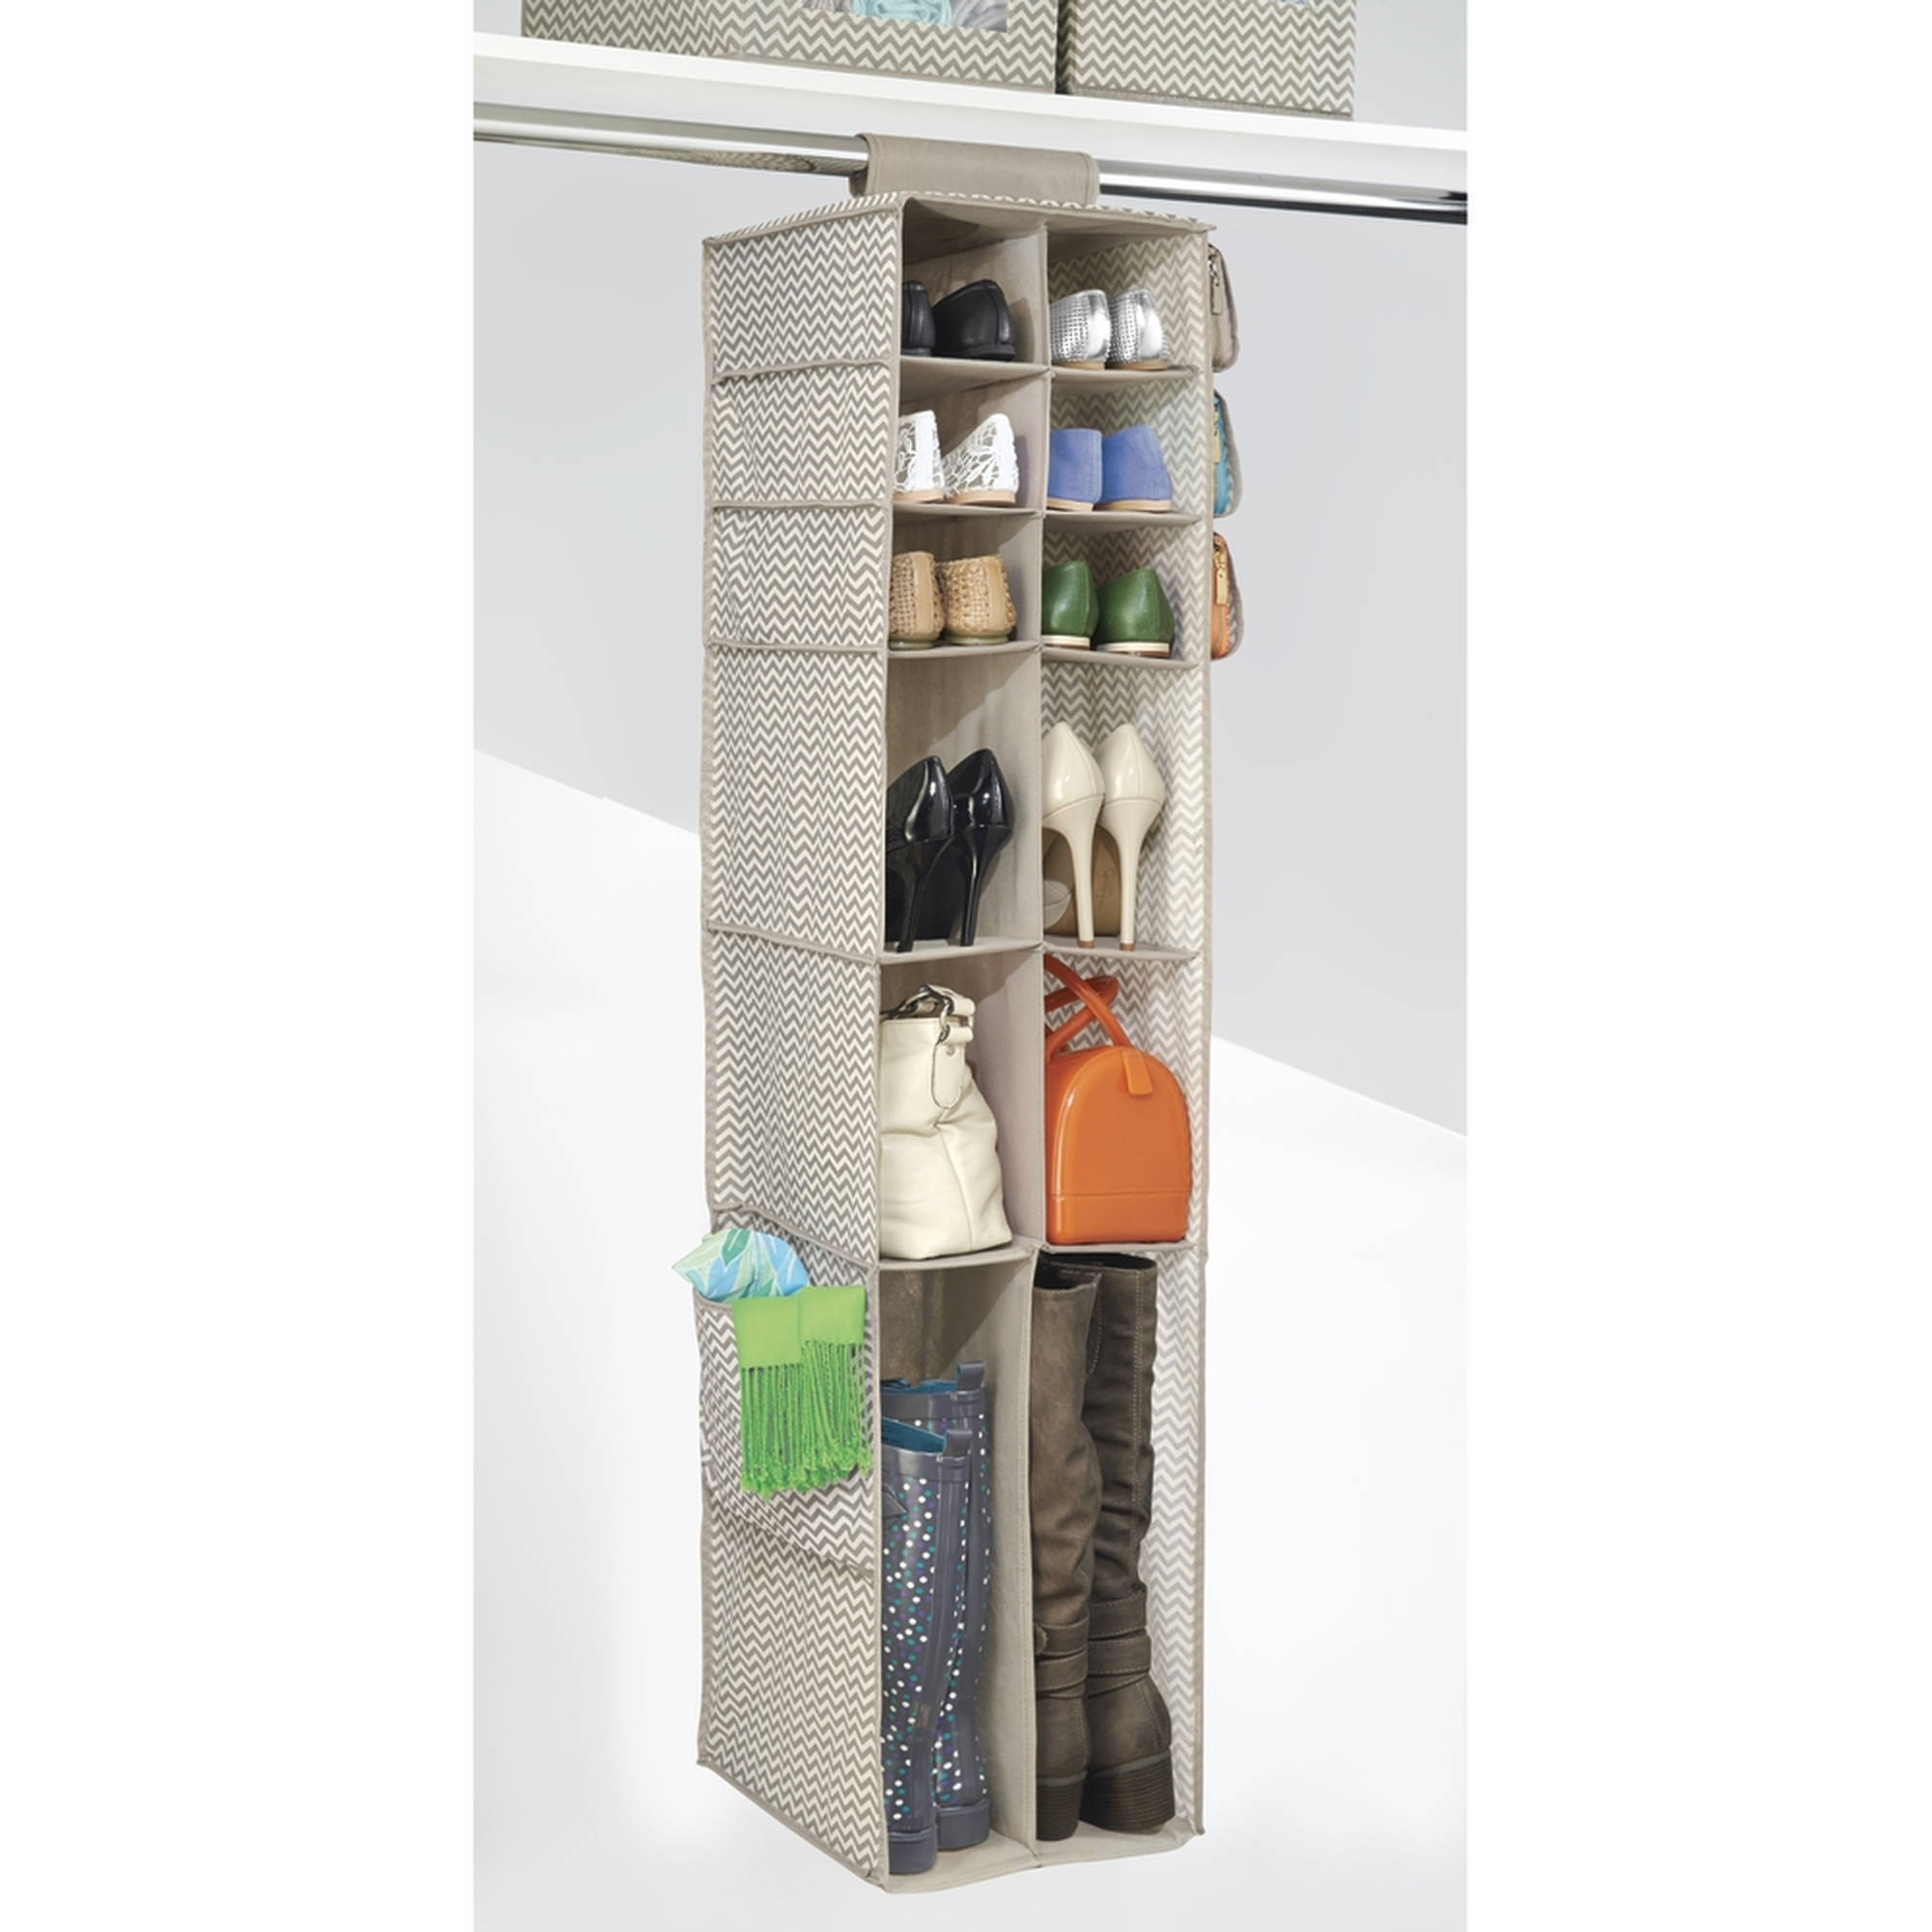 InterDesign Chevron Fabric Hanging Closet Storage Organizer, 16 Compartments, Taupe/Natural